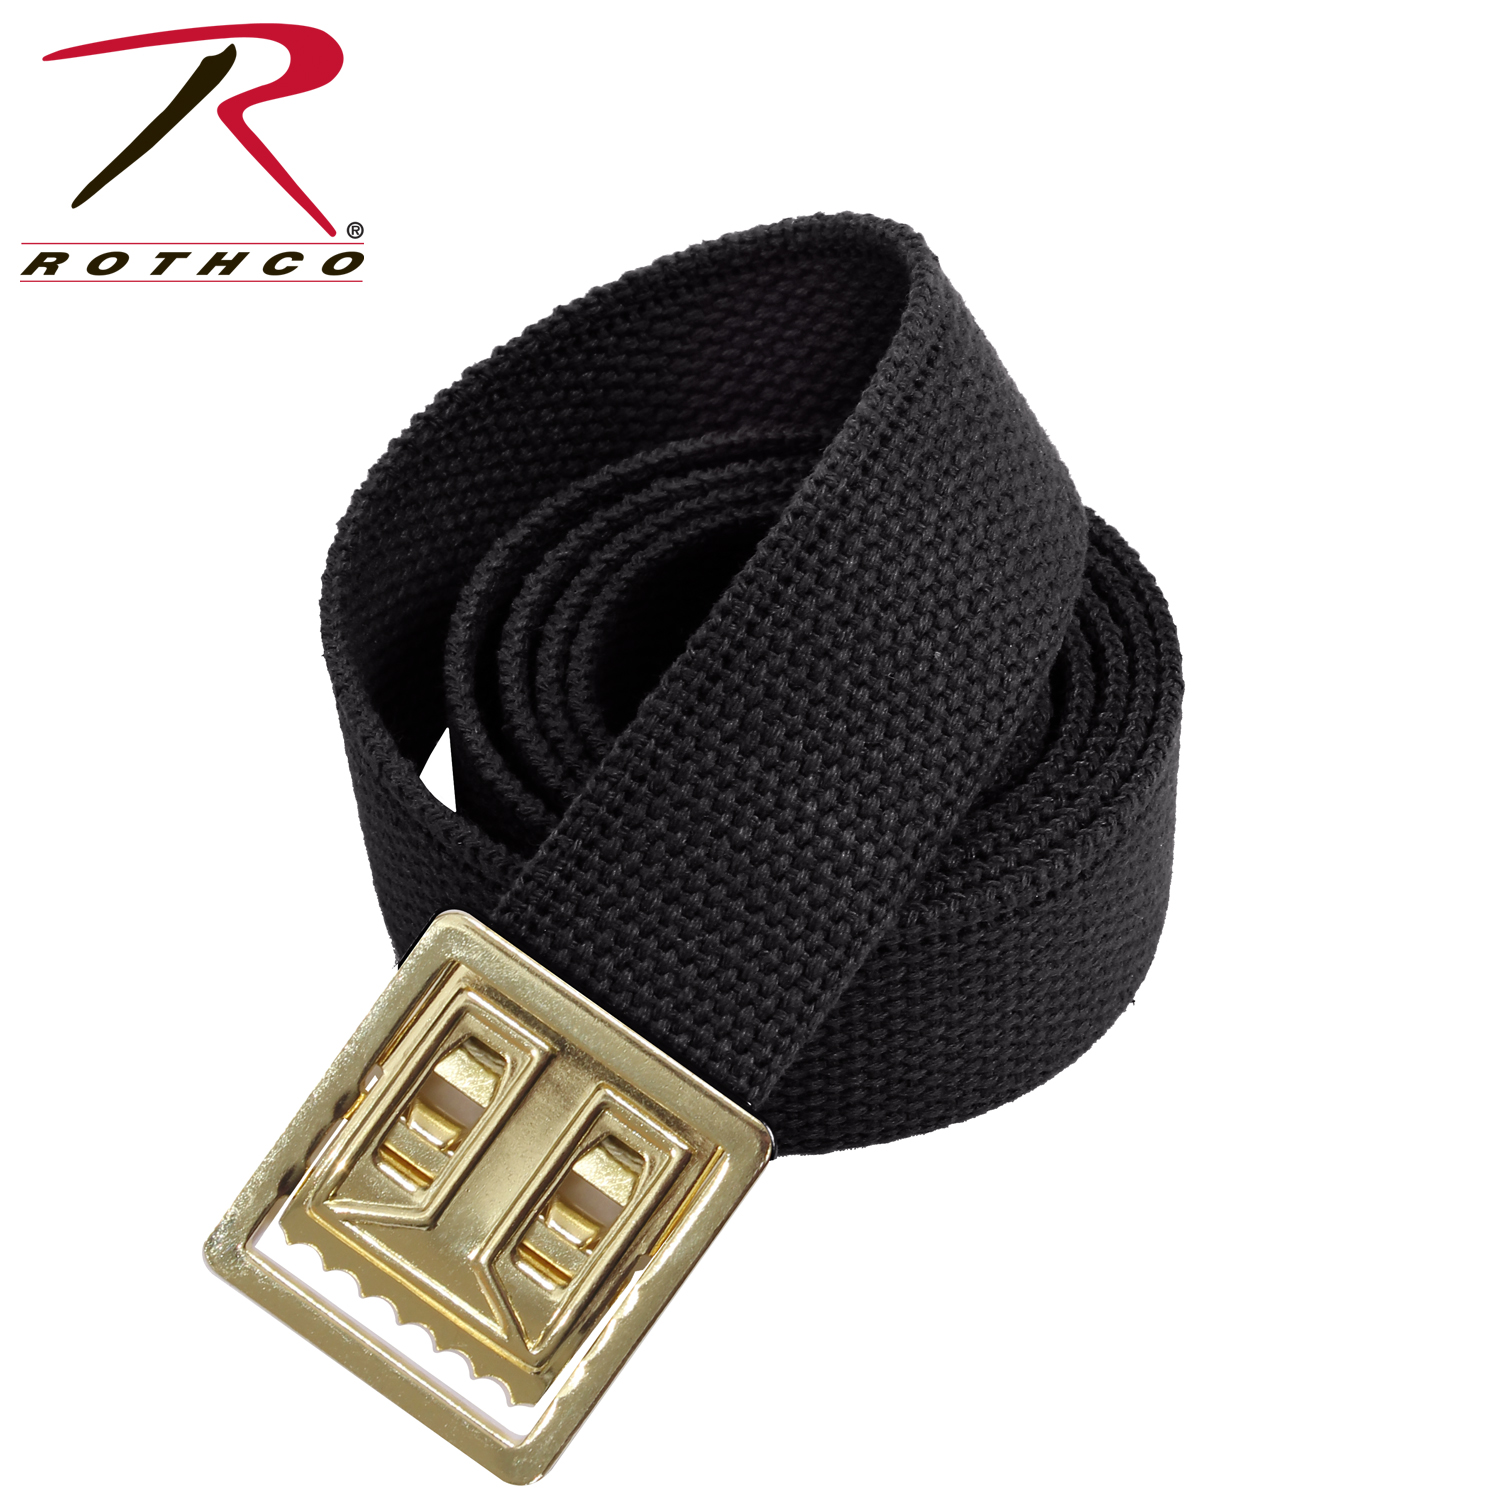 Rothco Military Web Belts w  Open Face Buckle Black 61ac879d441